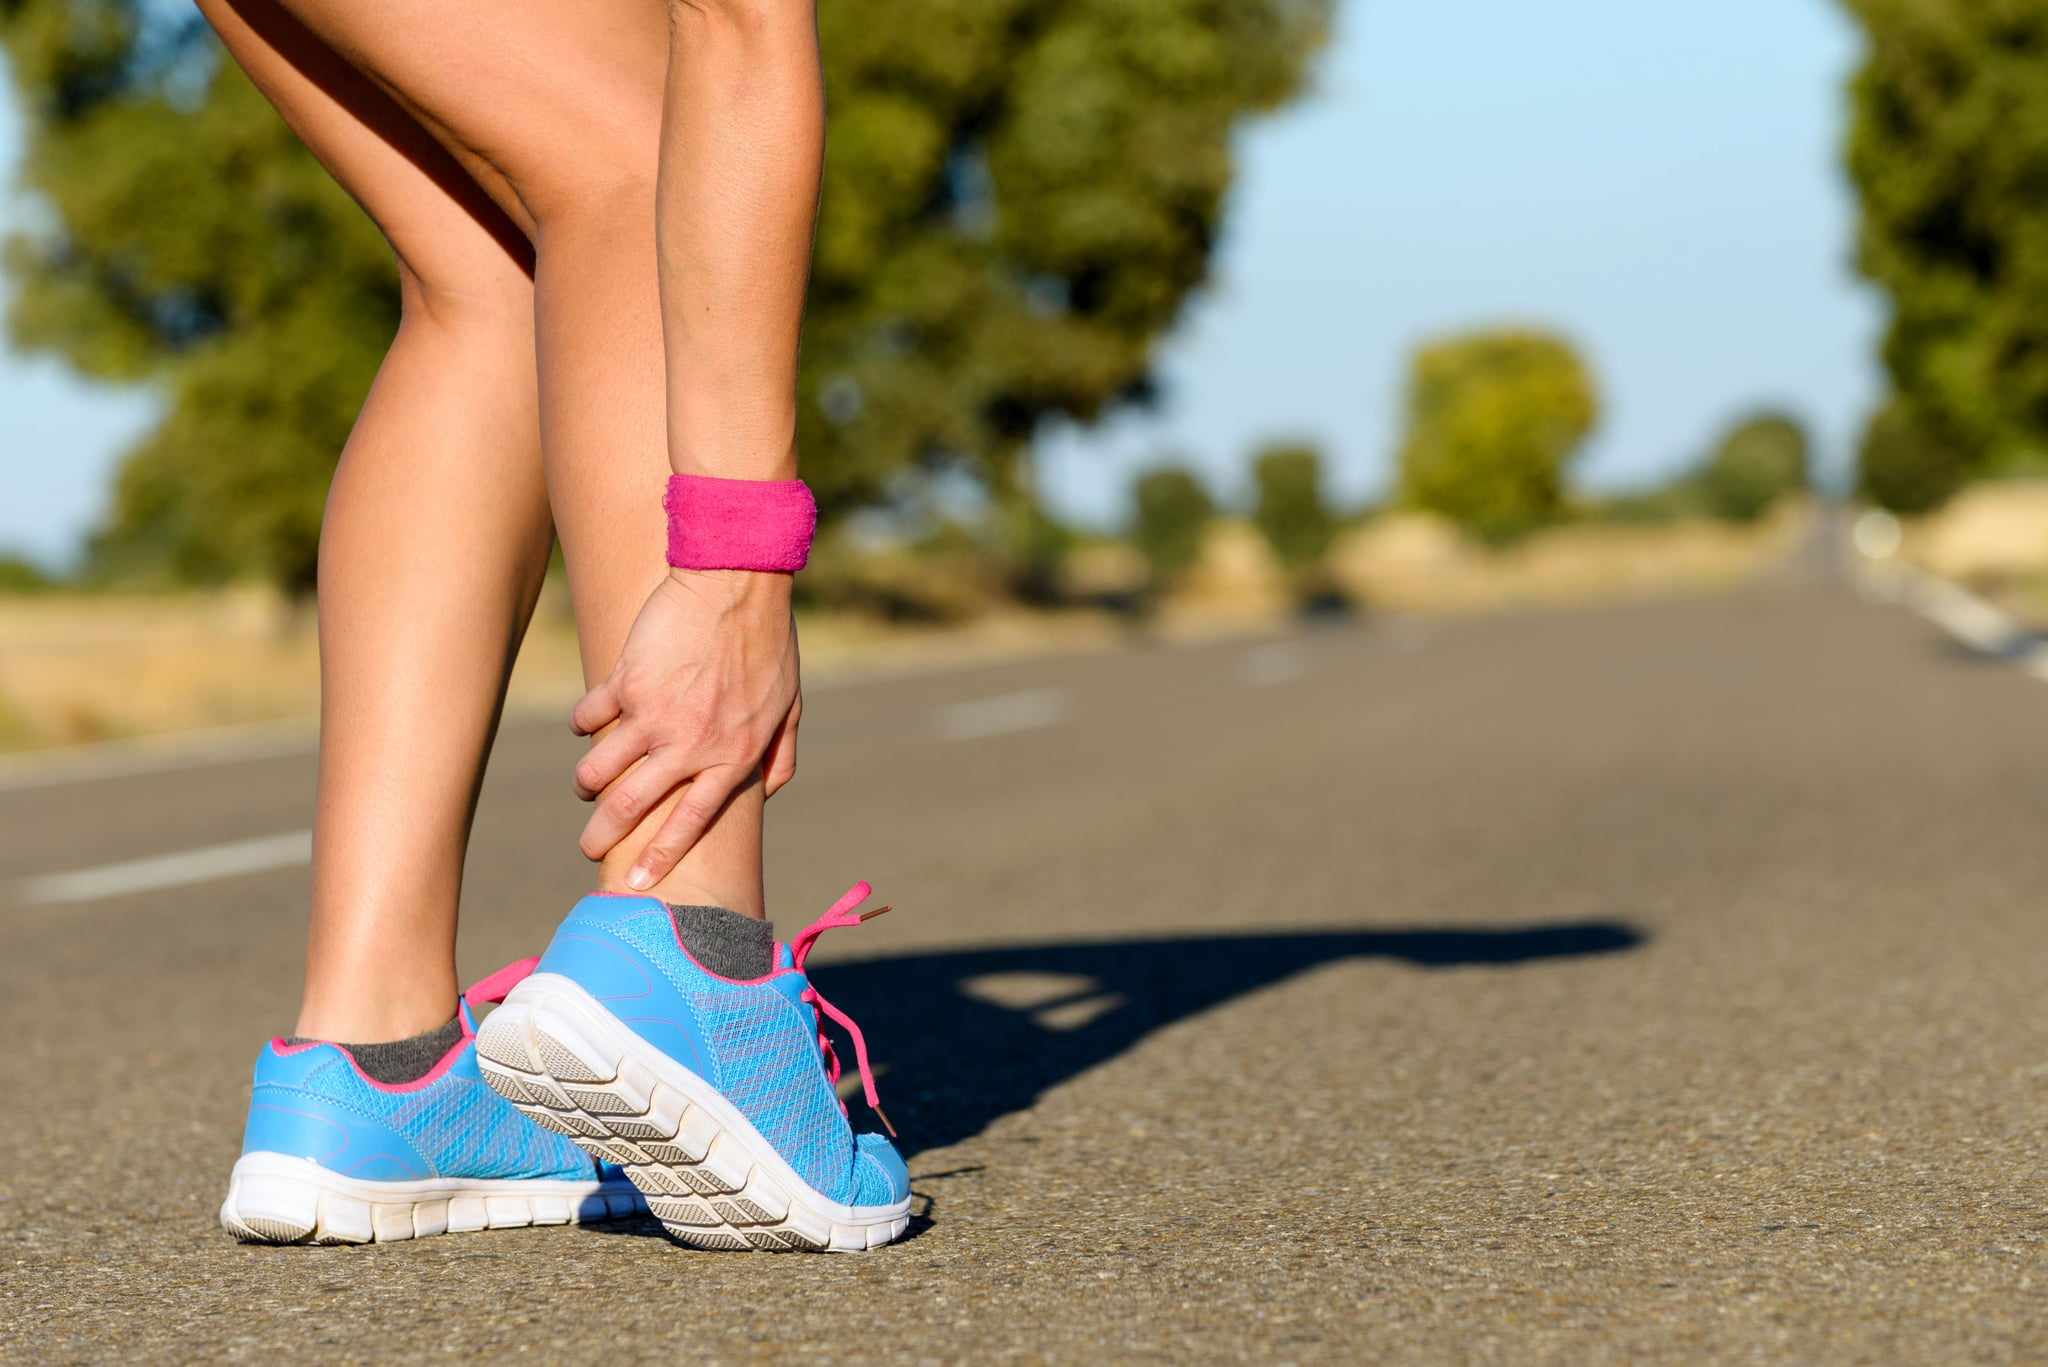 Why Do My Legs Itch When I Exercise And Run? | POPSUGAR Fitness ...